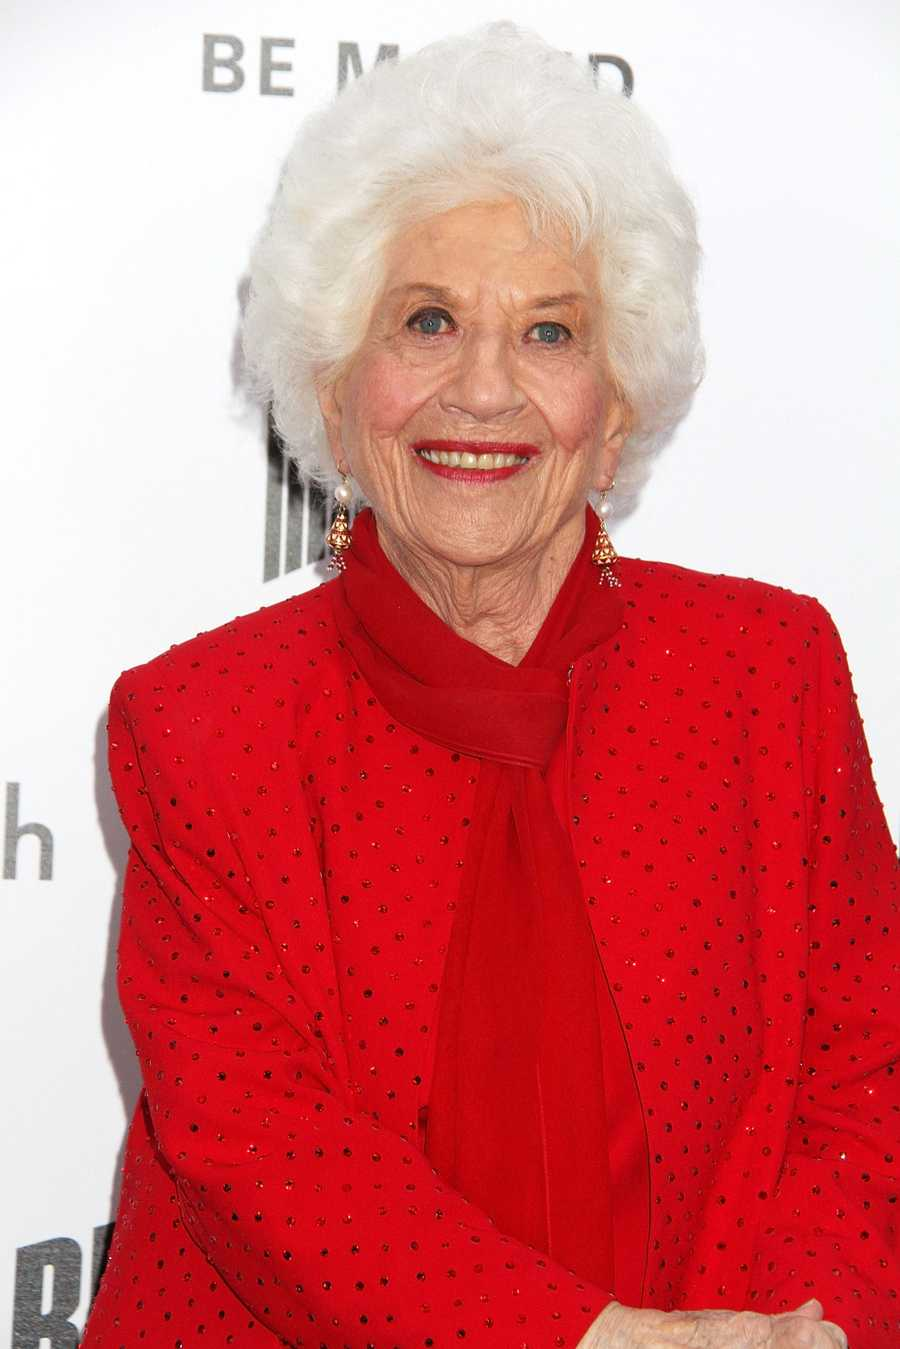 NOW: Charlotte RaeThough she's now 89 years old, Rae still has the same voluminous hair and heartwarming smile as she did in the '80s. And she's got plenty to smile about ? she had a remarkable six decade career in Hollywood and is still appearing in shows like Girl Meets World and movies including Ricki and the Flash. No wonder she's such a role model!